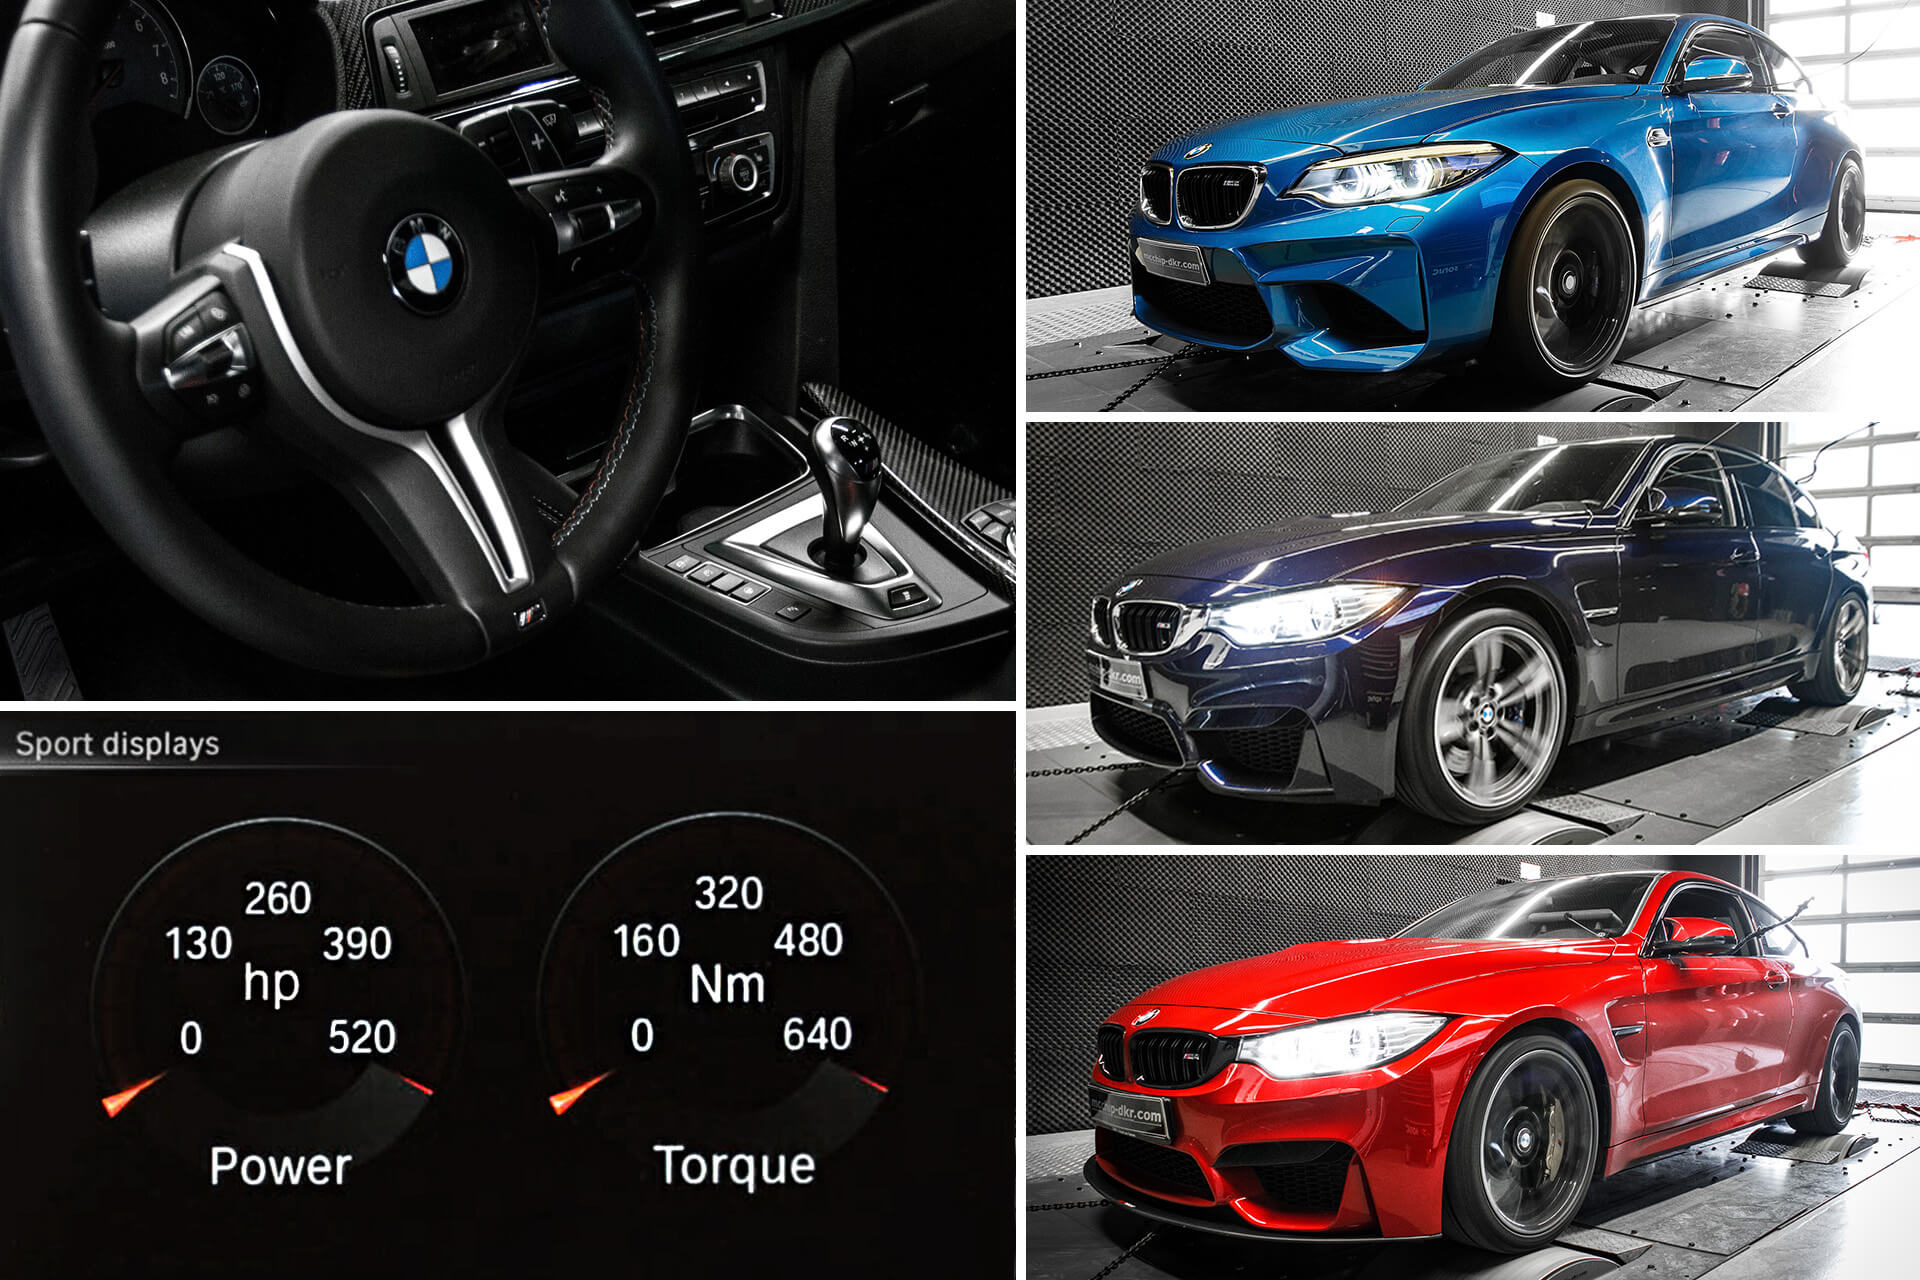 Bmw M4 Gts Coding For M2 M3 M4 Sport Display F Series